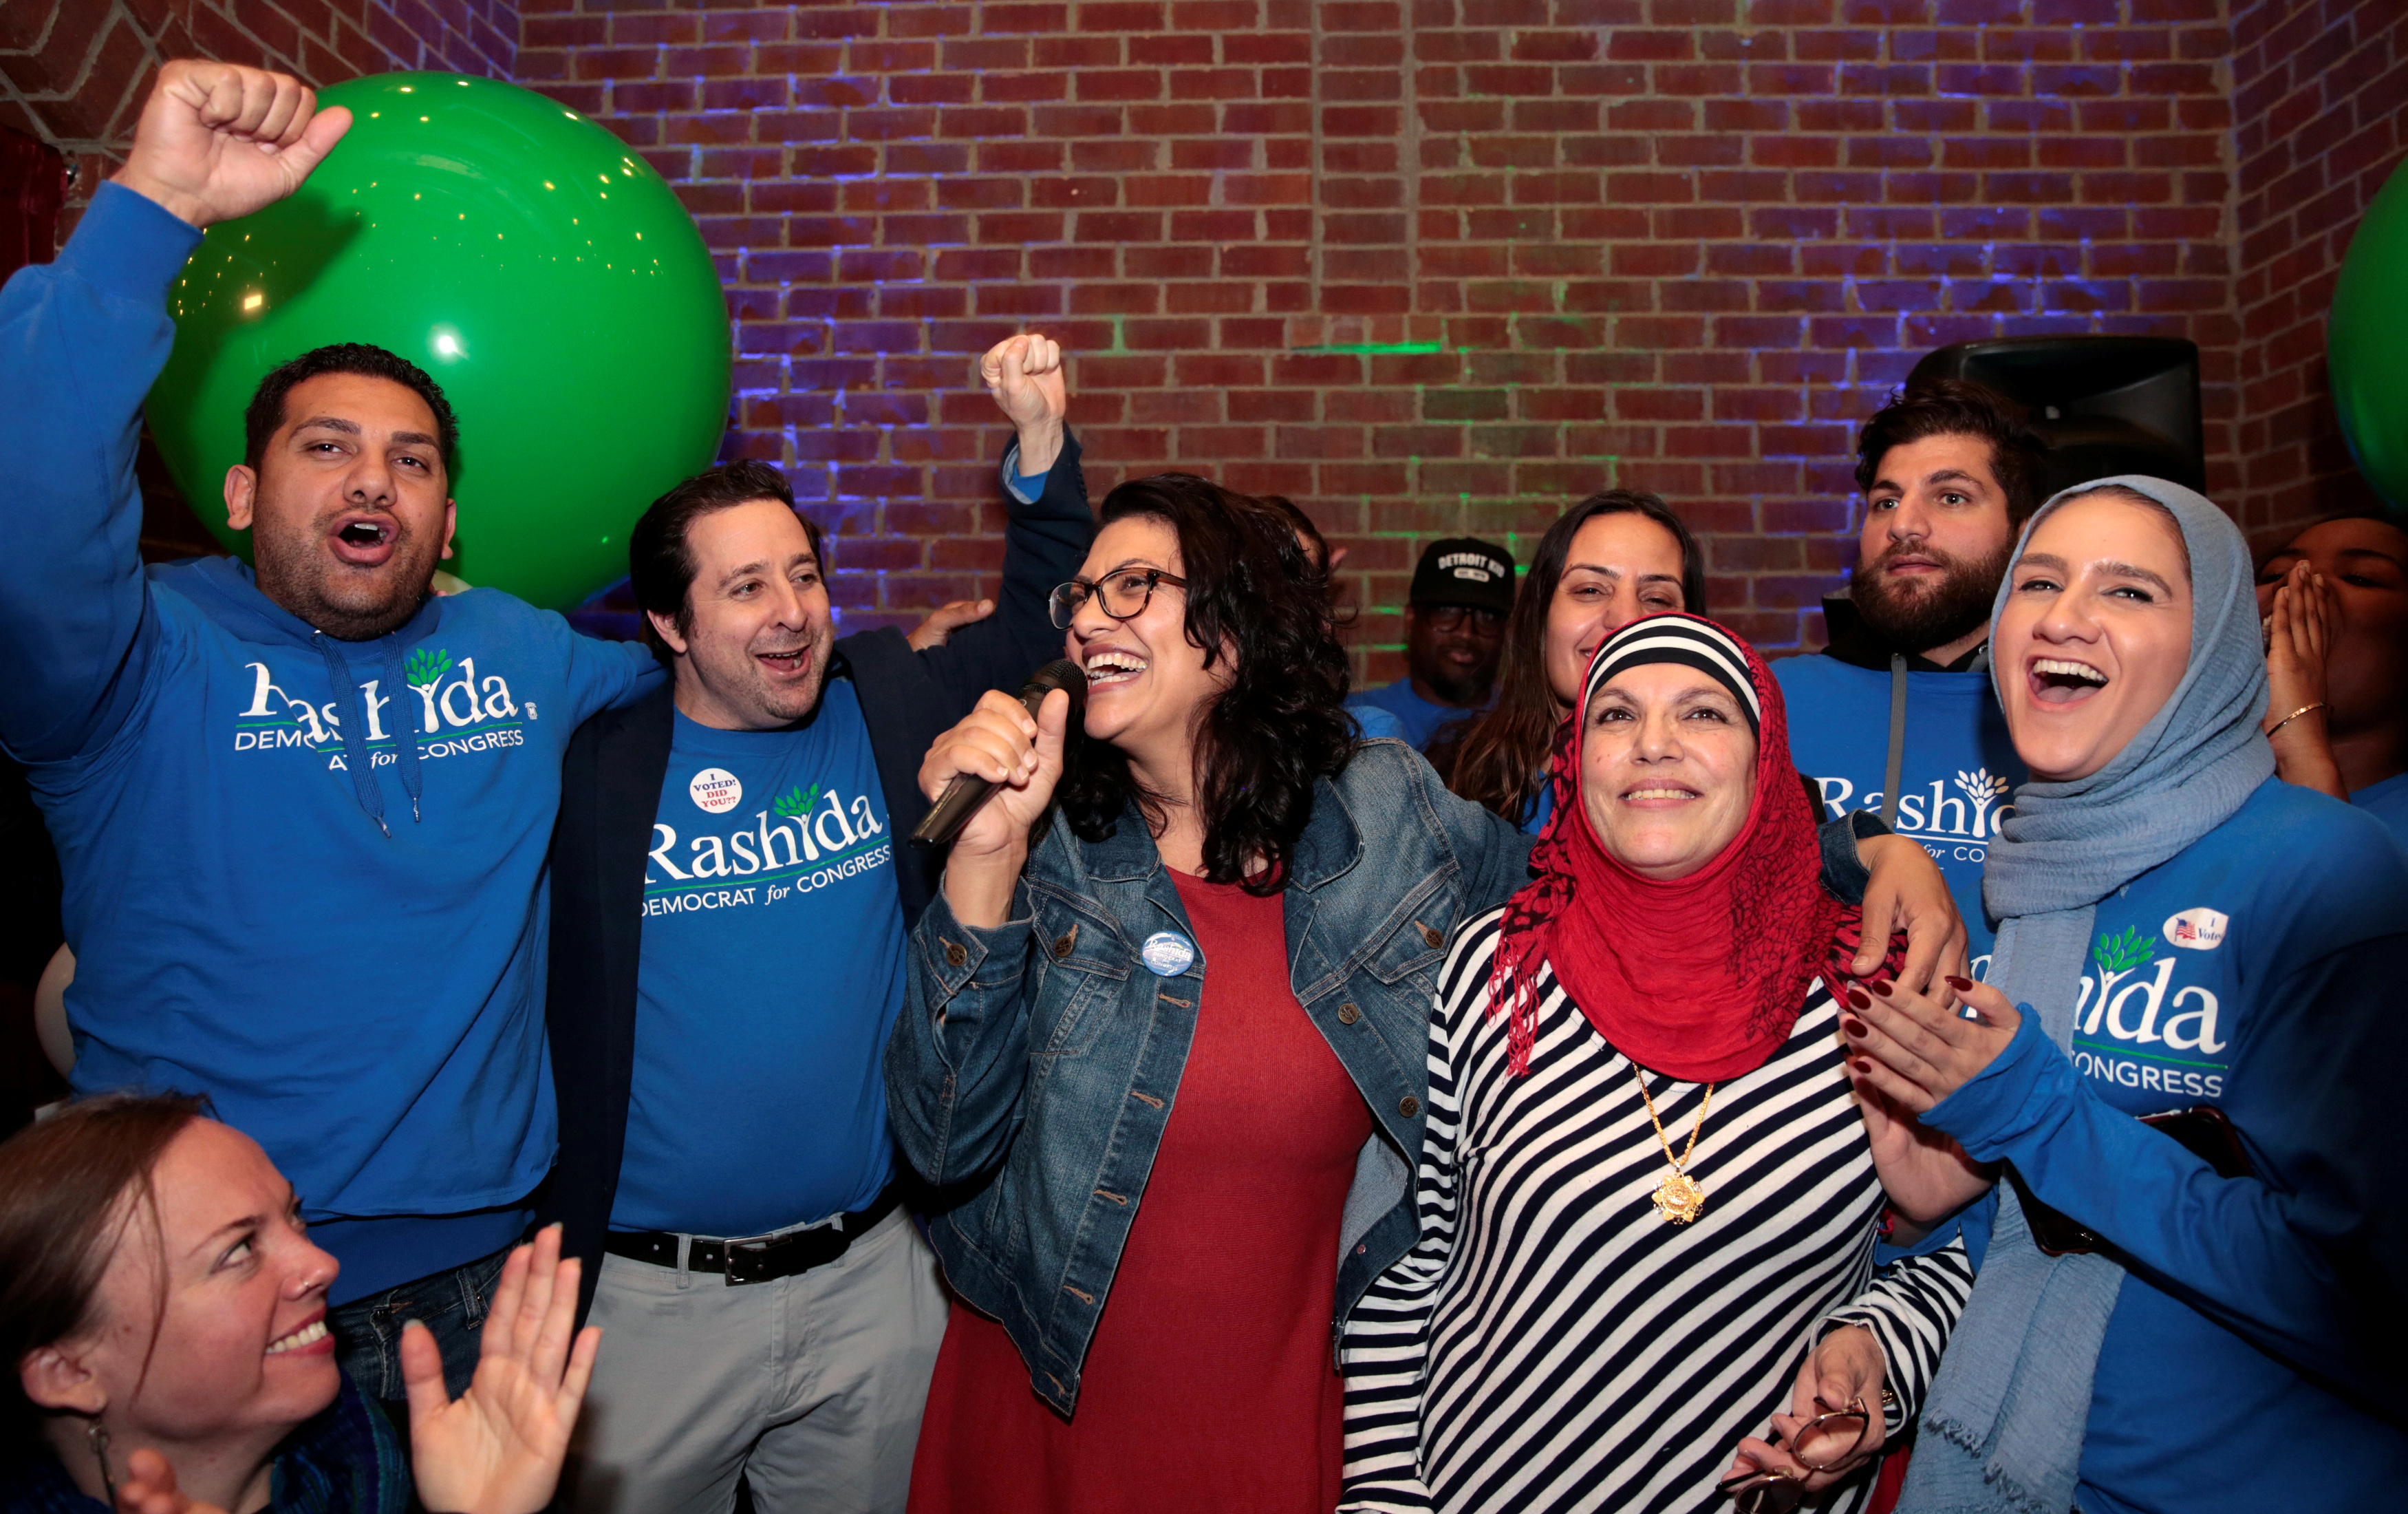 Democratic U.S. congressional candidate Rashida Tlaib celebrates with family and friends at her midterm election night party in Detroit, Michigan, U.S. November 6, 2018. REUTERS/Rebecca Cook